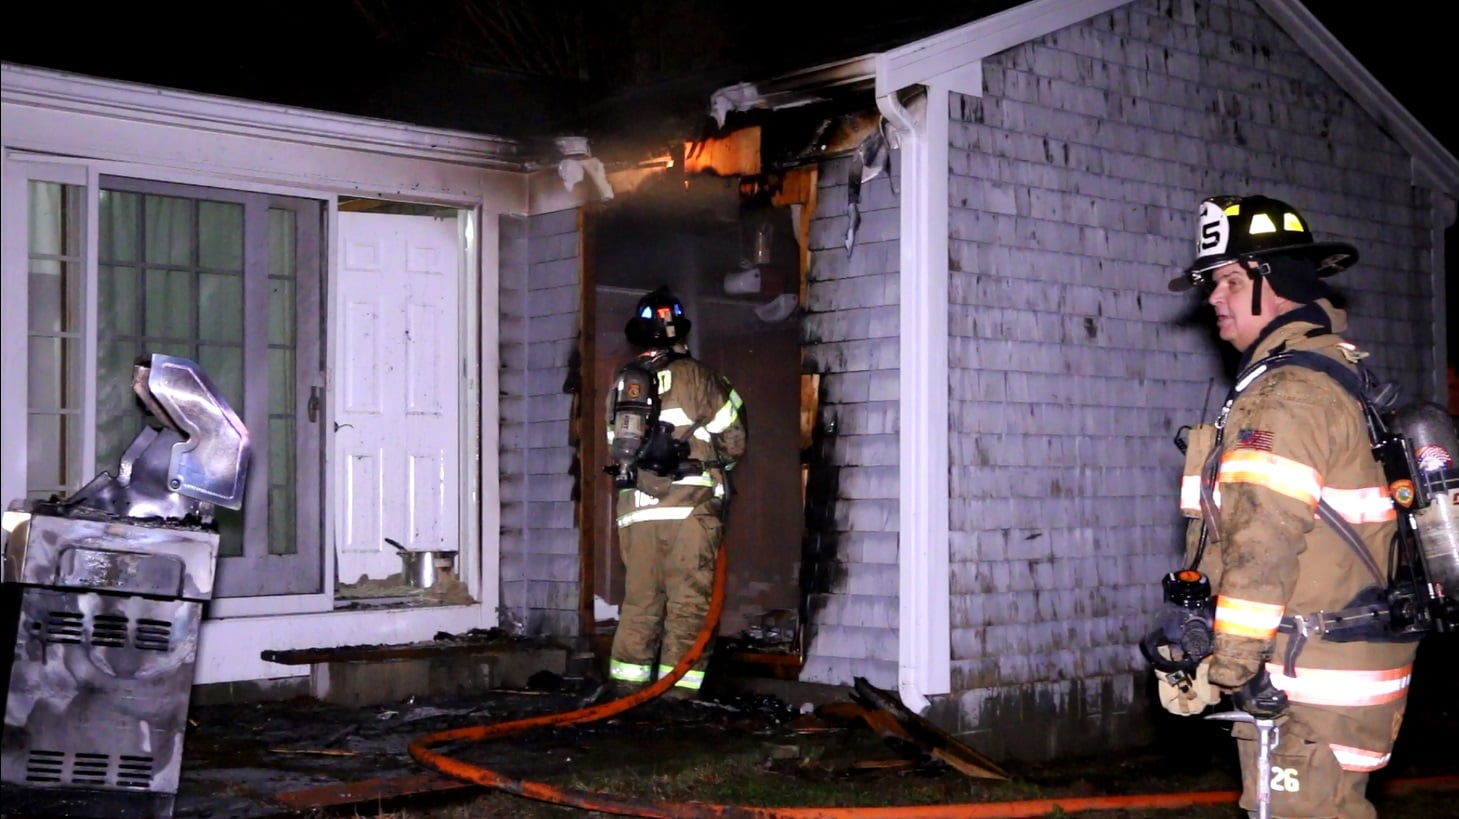 Alert neighbor noticed flames from gas grill that reignited and caught garage on fire… [VIDEO]